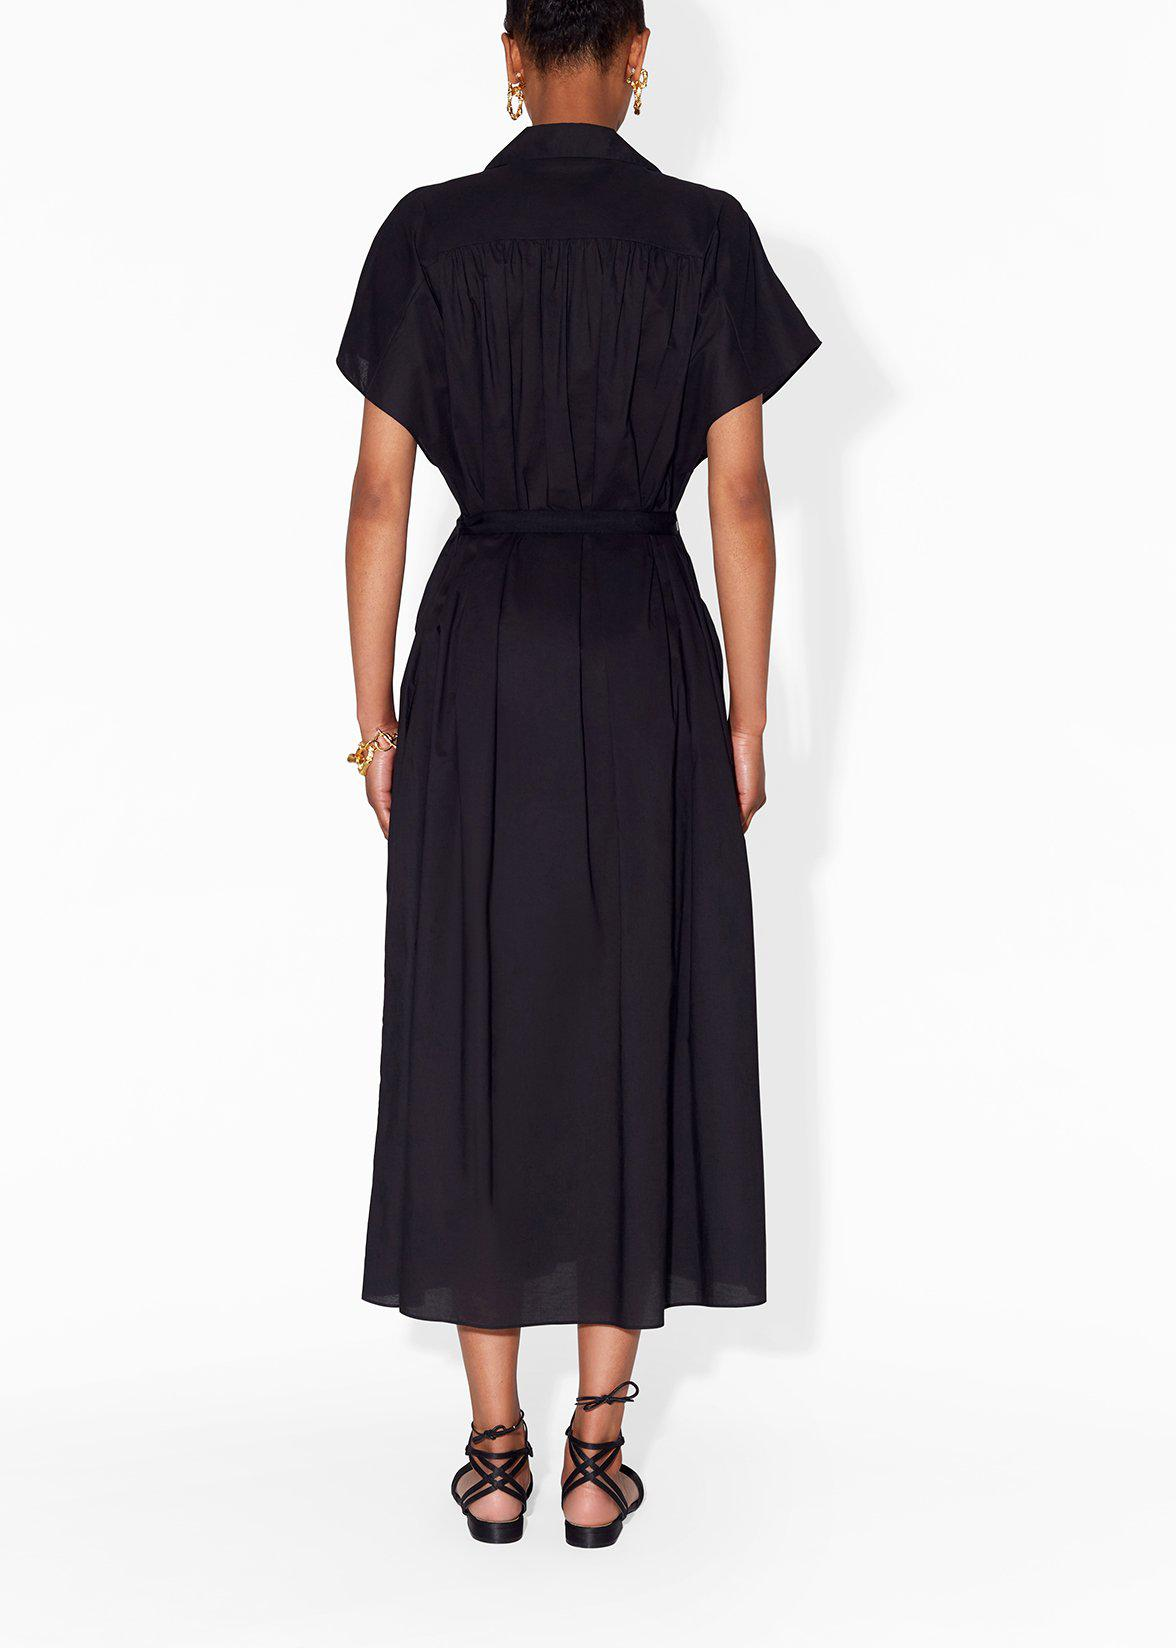 SHIRT DRESS IN COTTON VOILE 3